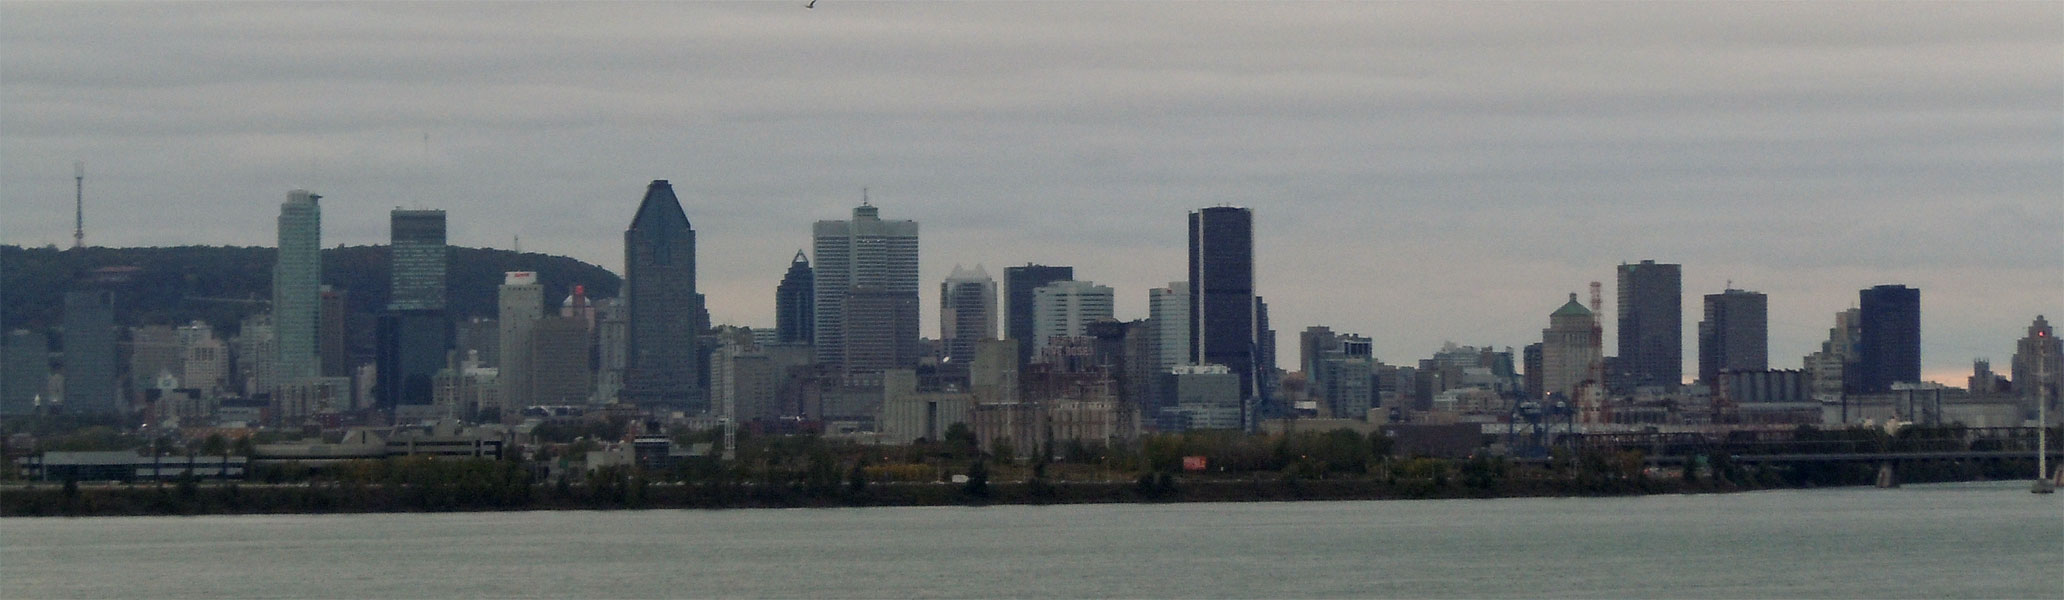 Panoramic view of Montreal skyscrapers, Province of Quebec